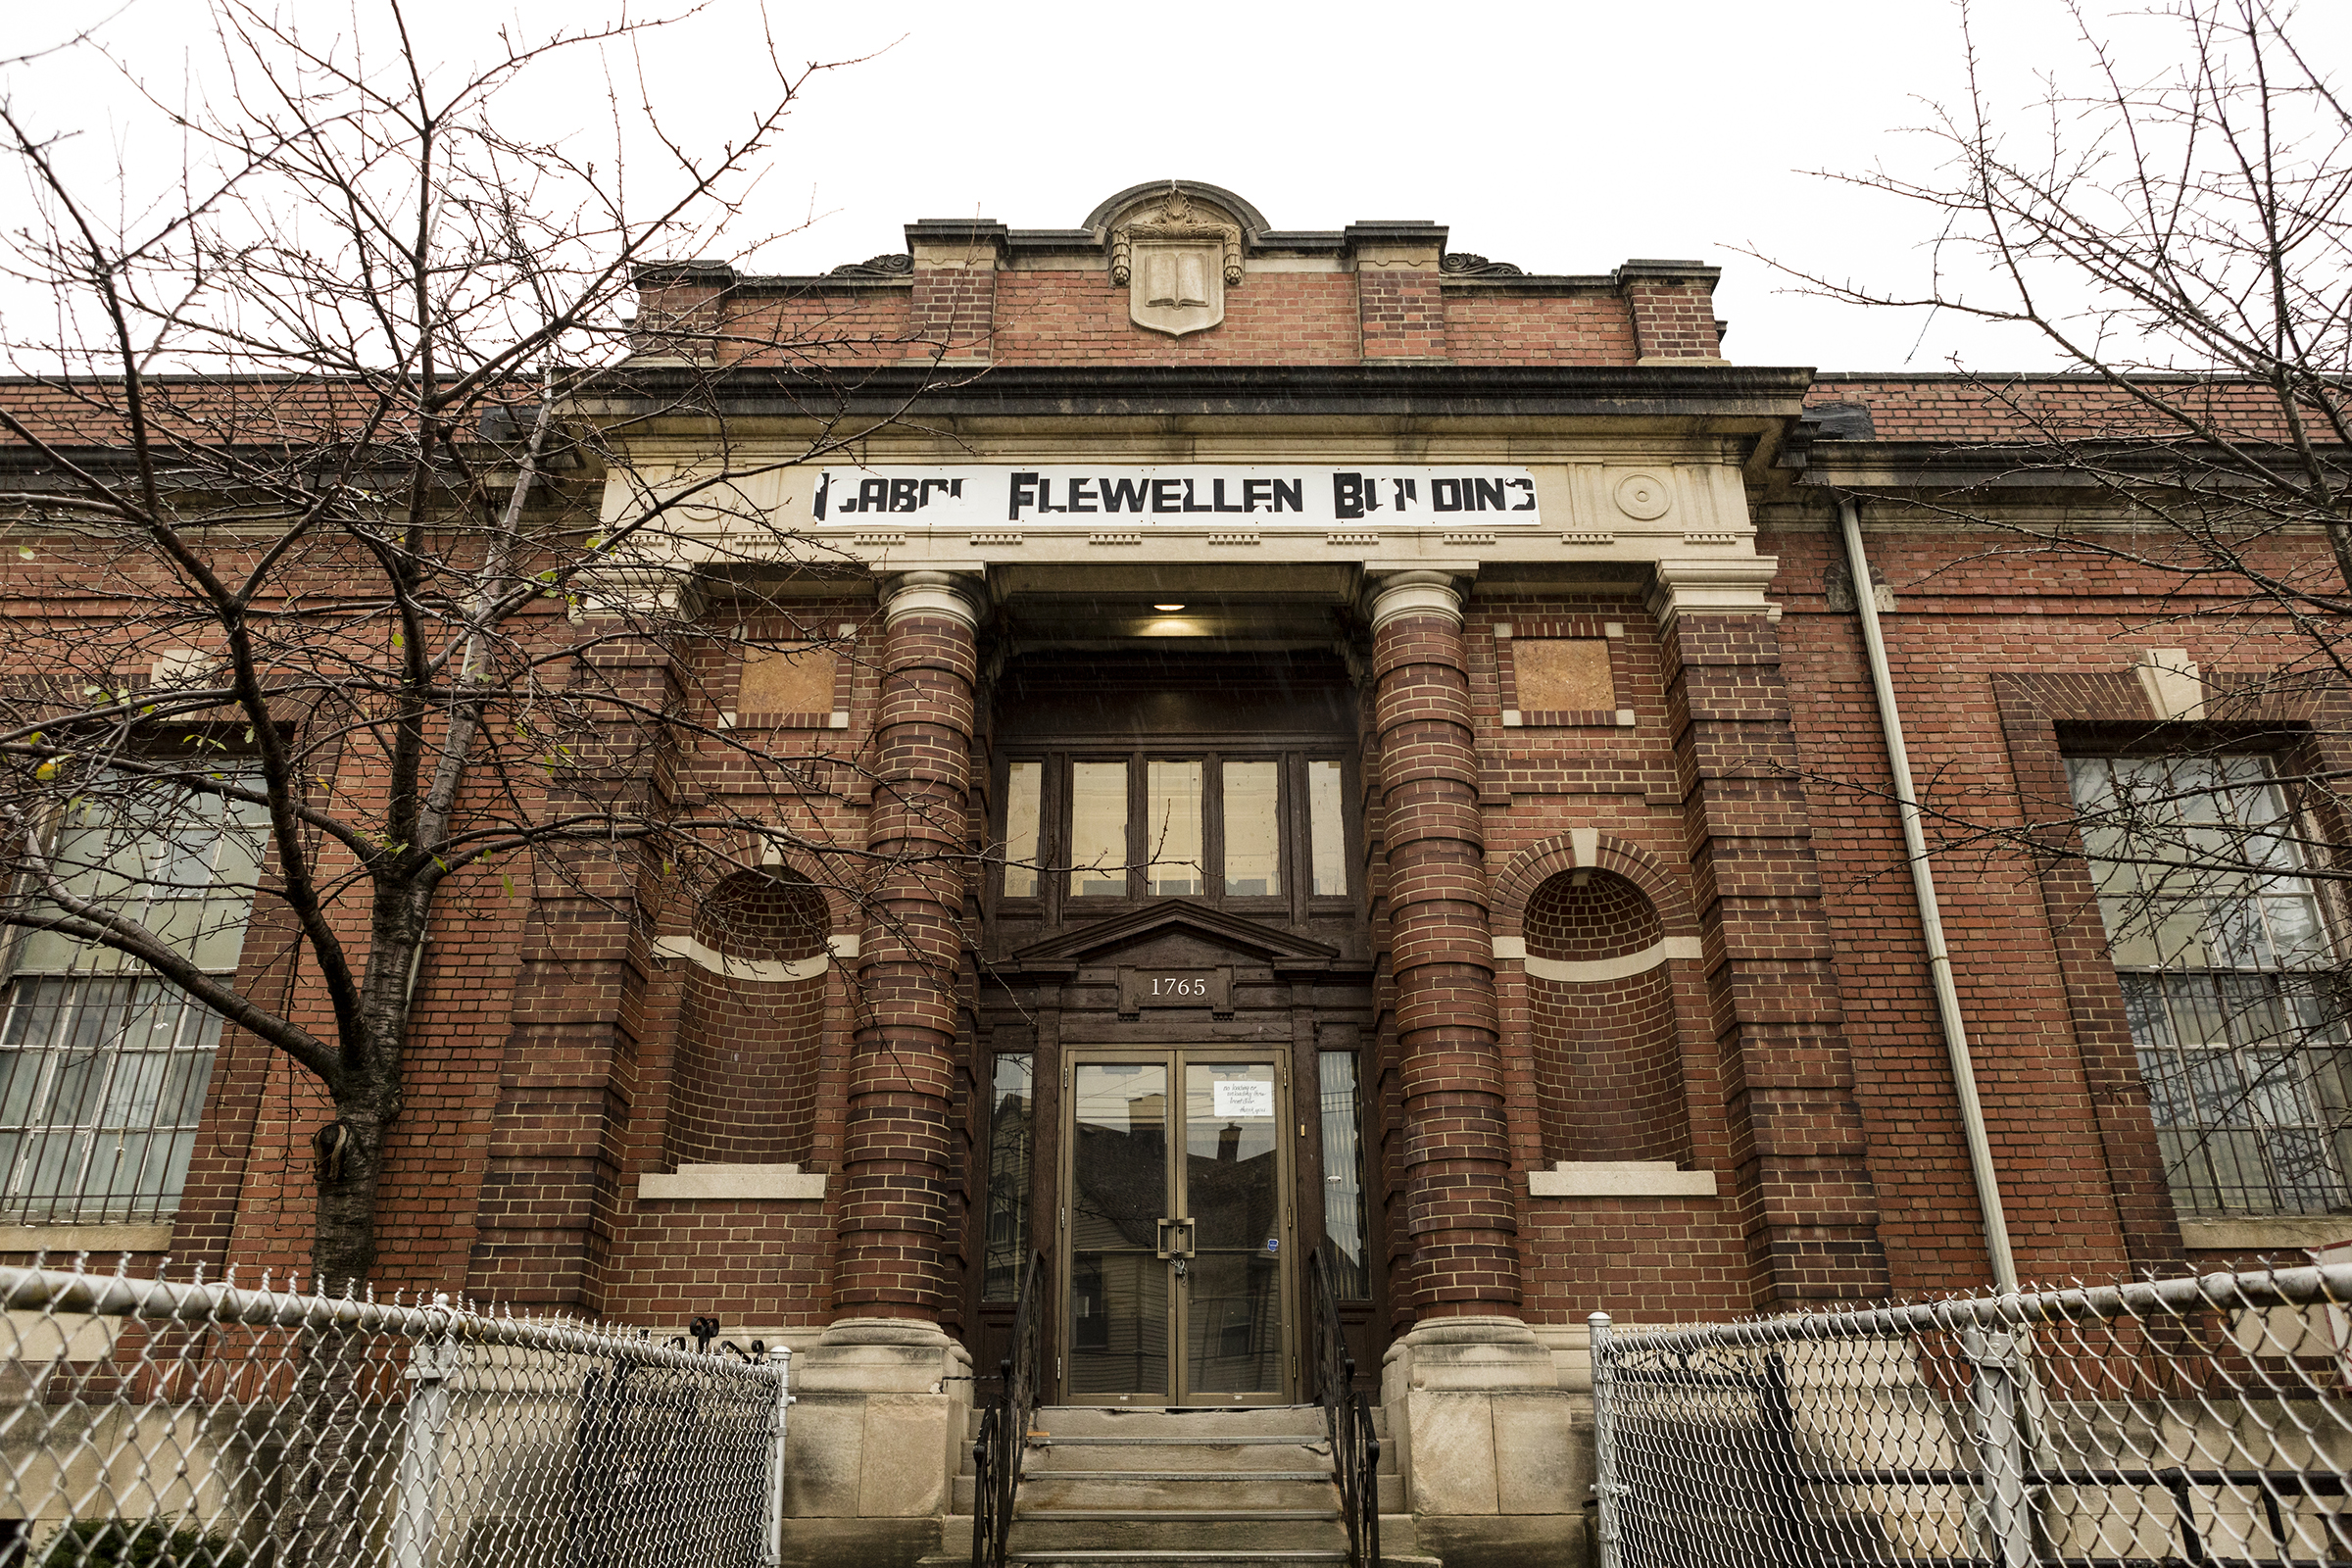 The African American Museum of Cleveland is housed in a Carnegie library in Cleveland's Hough neighborhood and was closed for six years due to funding struggles until reopening part time in 2010. MUST CREDIT: Photo for The Washington Post by Amber Ford